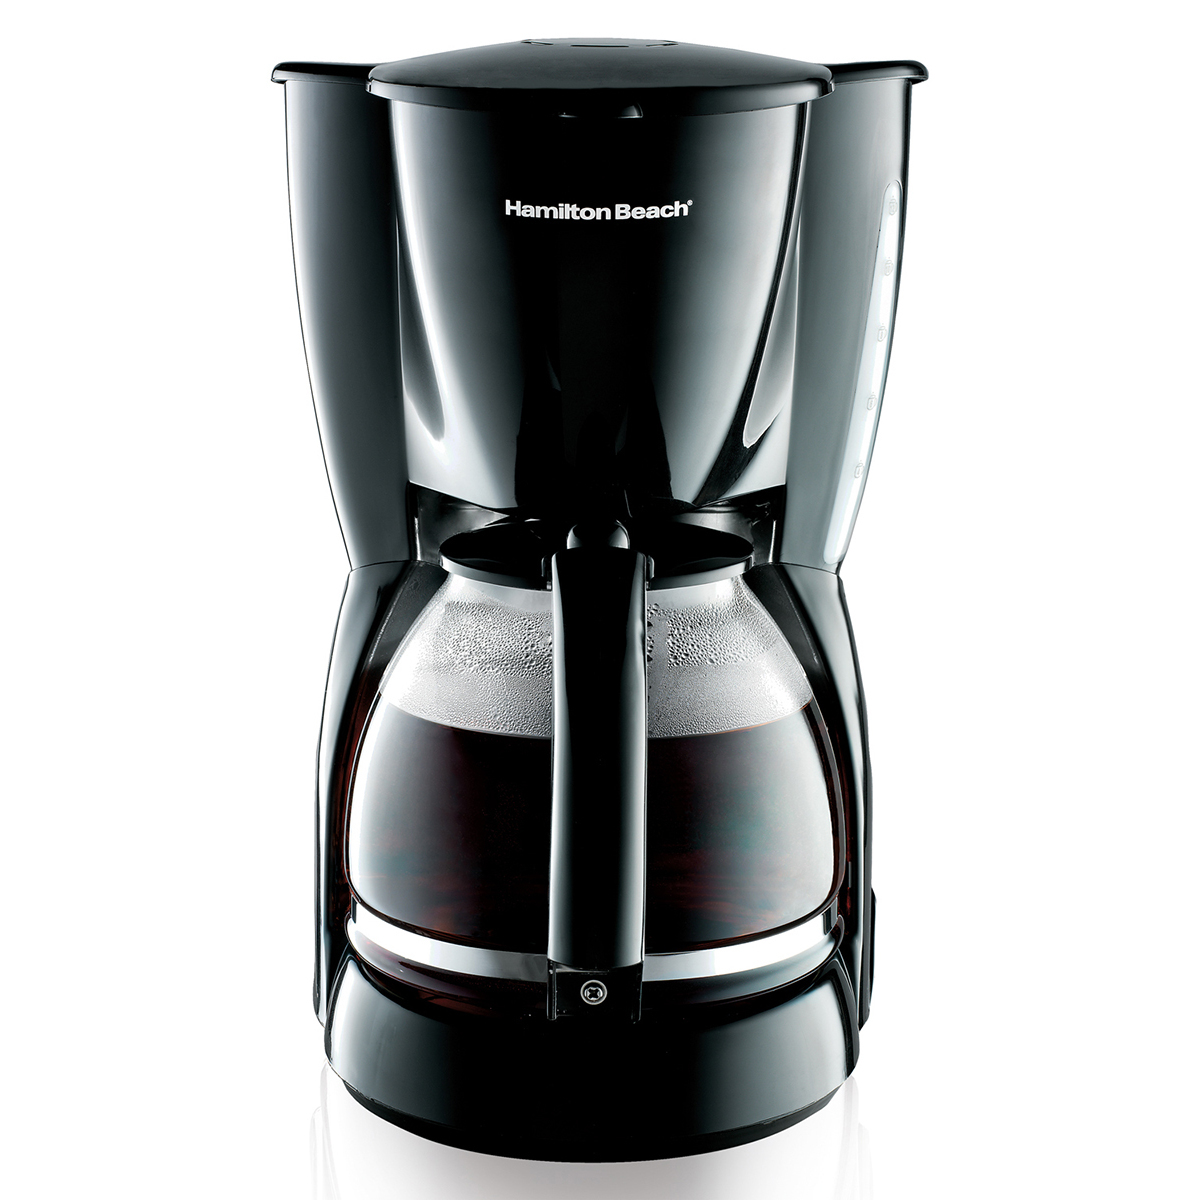 12 Cup Coffee Maker (49316)